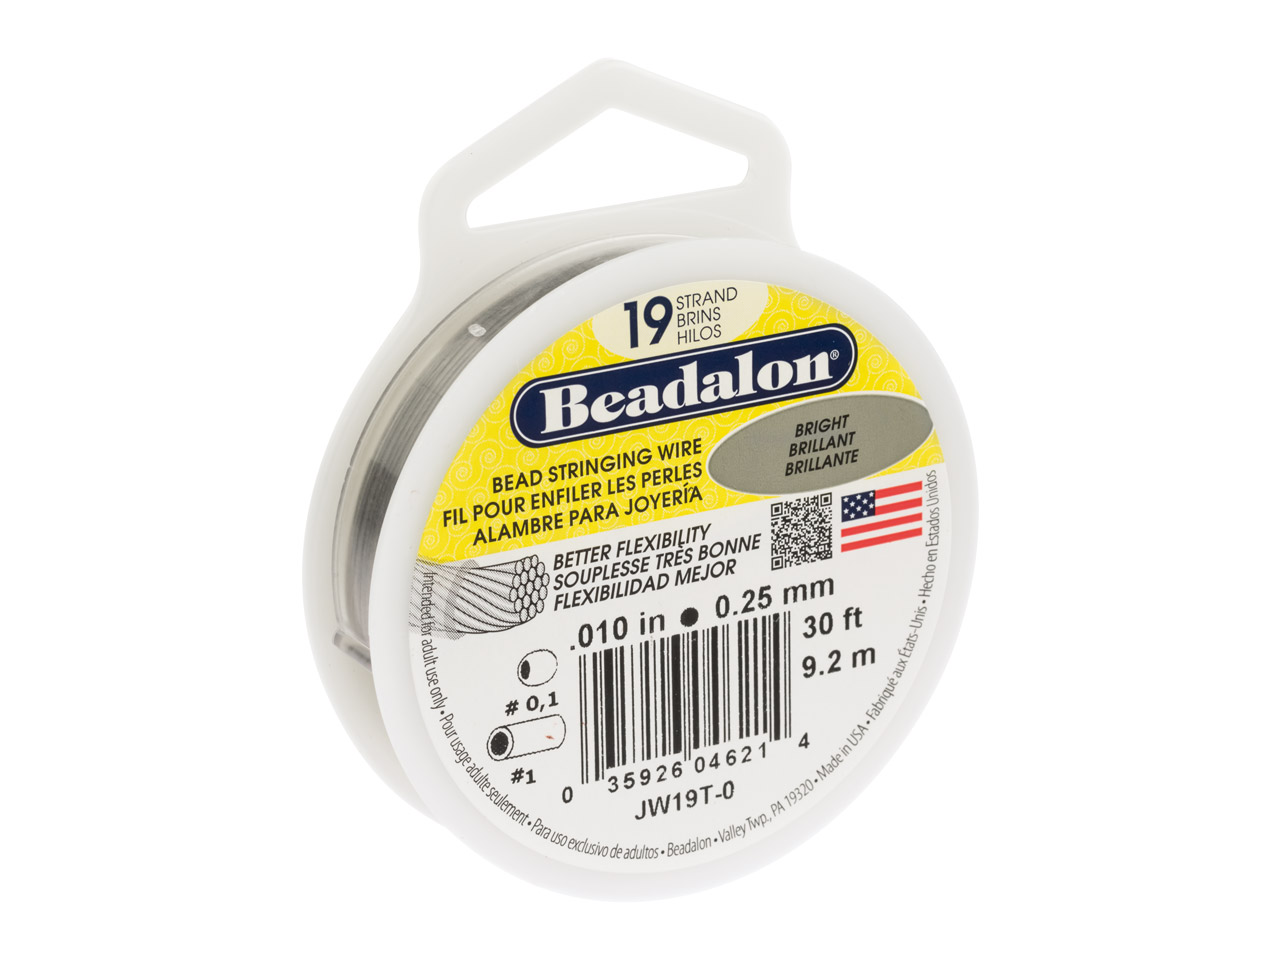 Beadalon 19 Strand Bright 0.25mm X 9.2m Wire